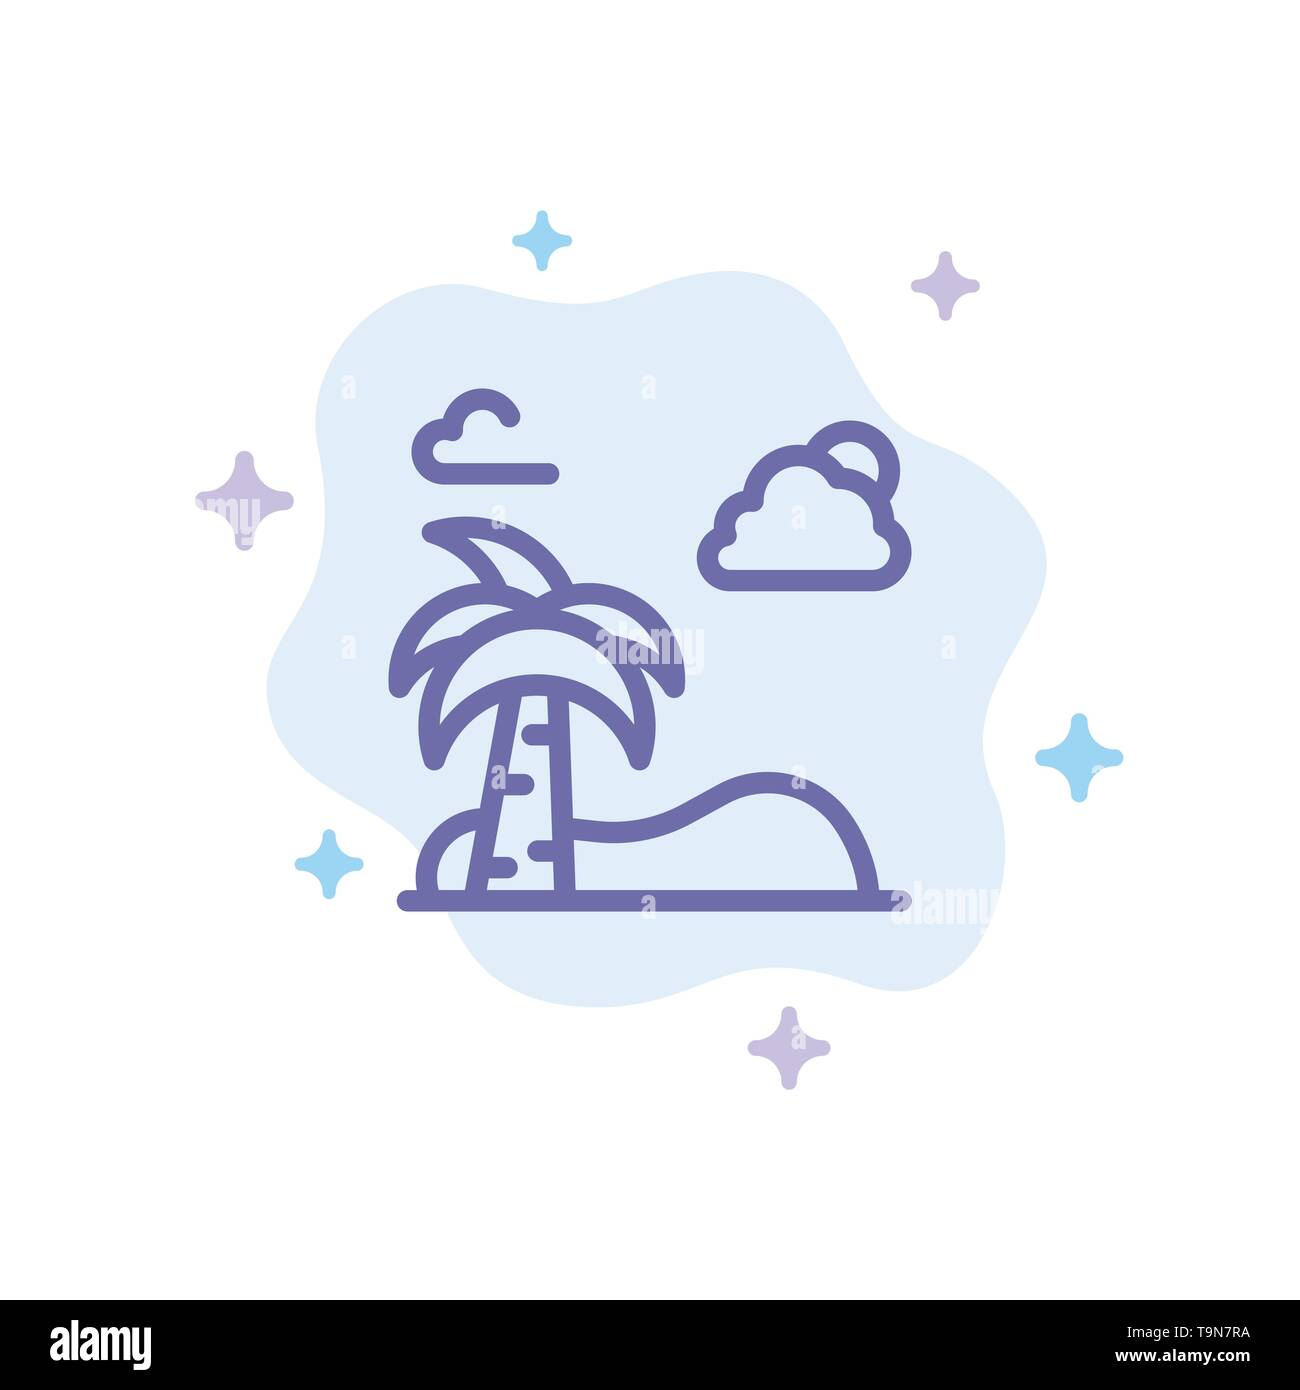 Beach, Palm, Tree, Spring Blue Icon on Abstract Cloud Background - Stock Image